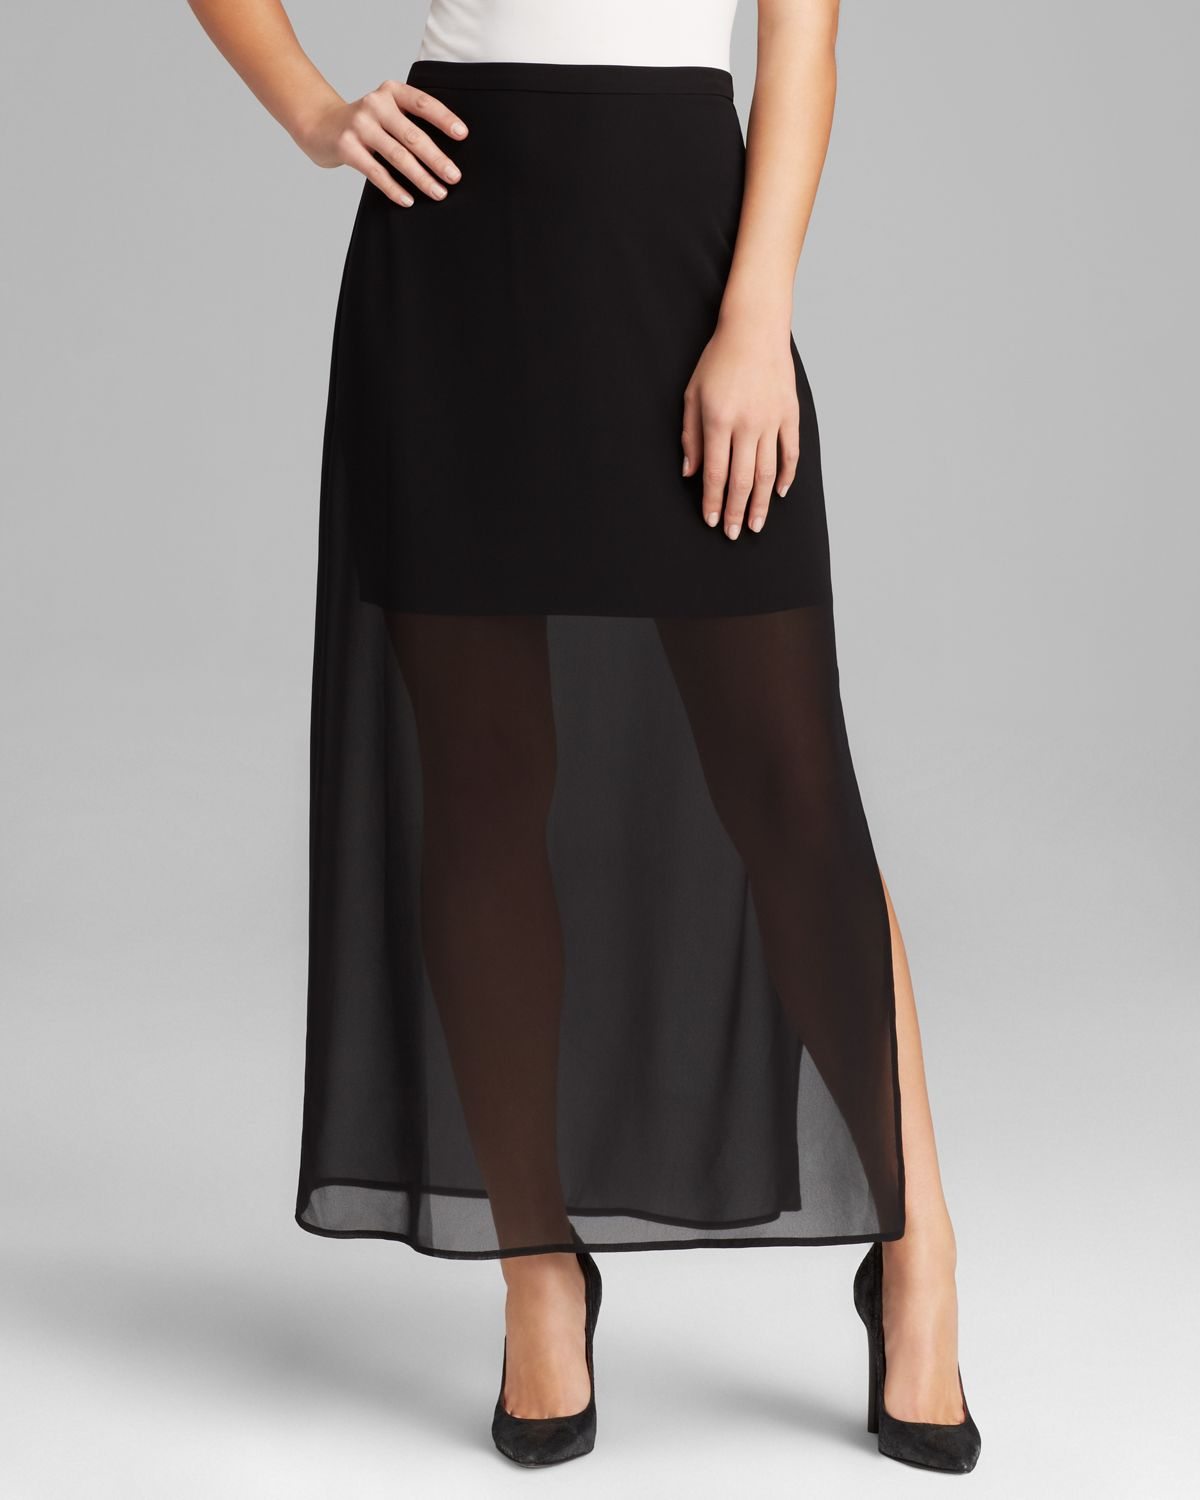 Vince Camuto Semi Sheer Overlay Maxi Skirt in Black - Lyst